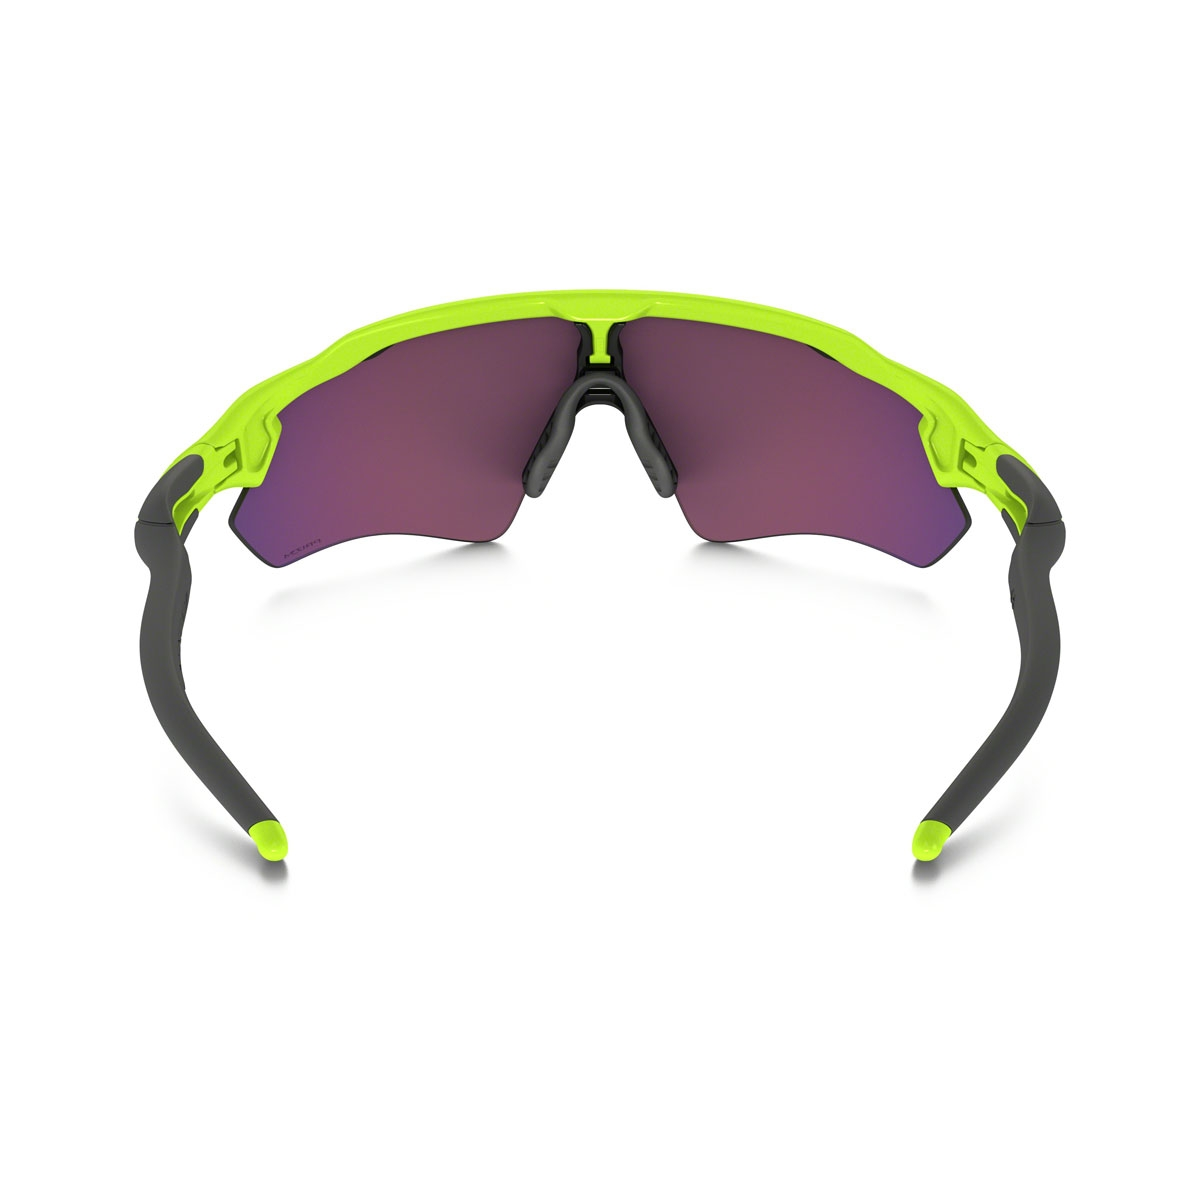 3a71a6b3a52 ... Image of Oakley Radar EV Path Retina Burn Prizm Road Sunglasses - Retina  Burn Prizm ...